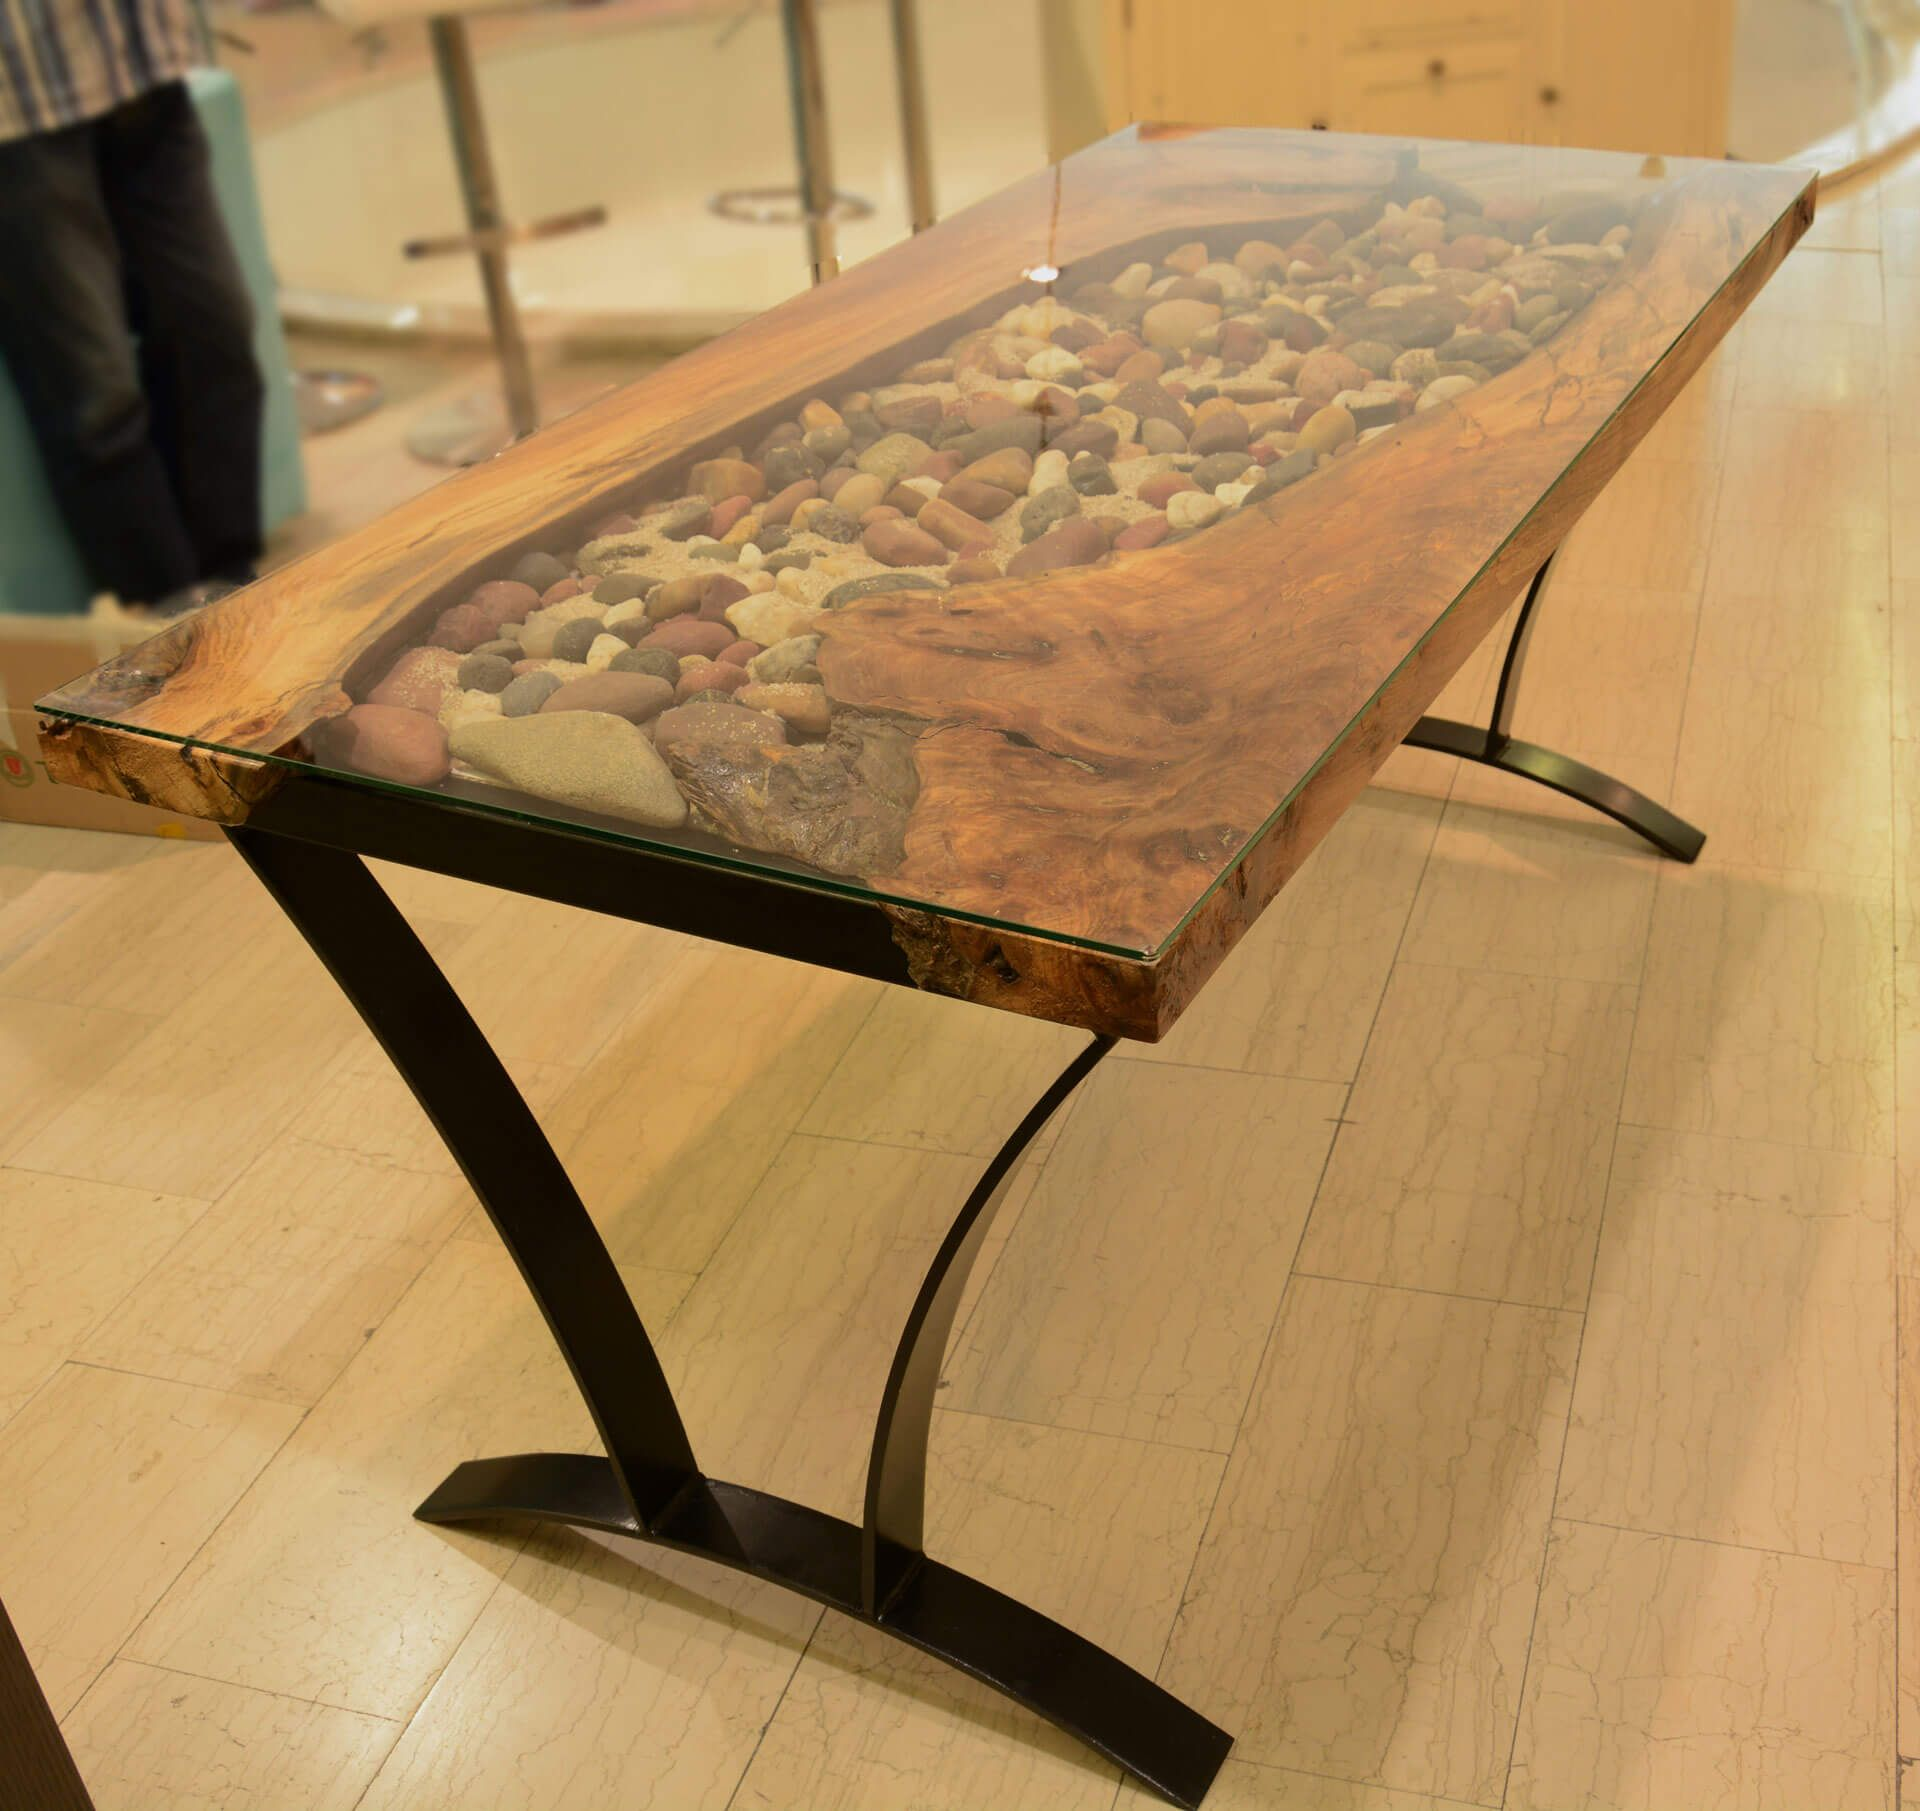 Walnut glass river rock wood table | Resin table, Wood ...